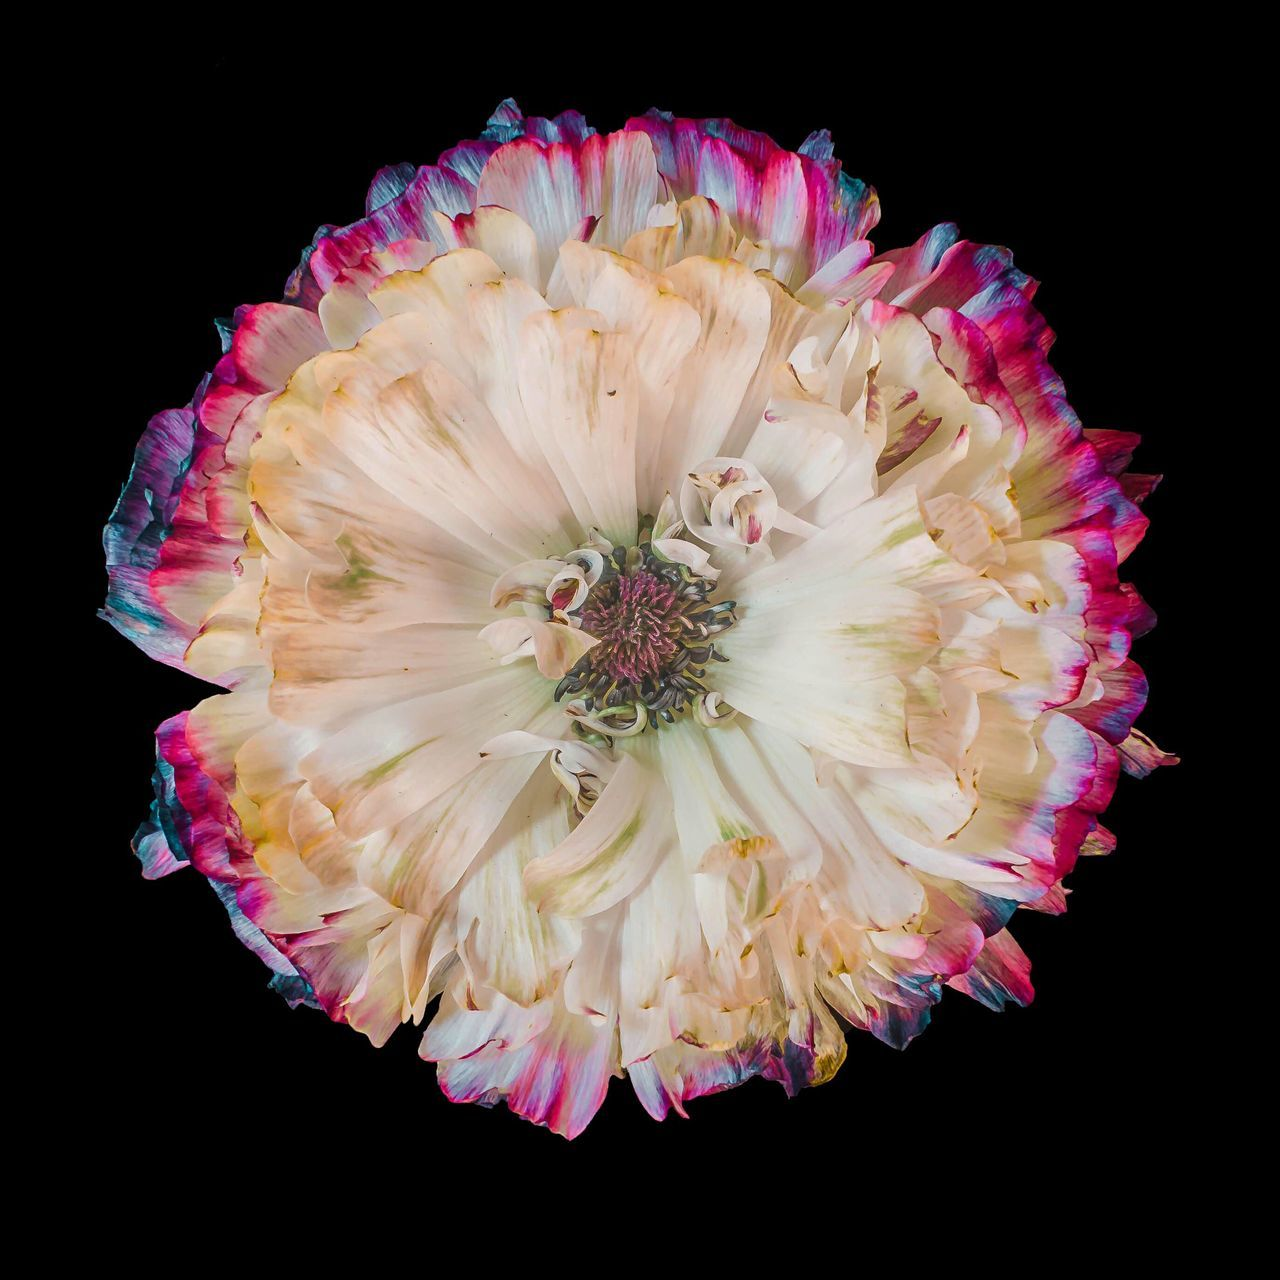 Petals Flower Black Background Petals Flower Head Fragility Studio Shot Beauty In Nature Freshness Growth Stamen Peony  Close-up Macro Beauty Macro Photography Flower Collection Flowerporn Flowers, Nature And Beauty Flowerlovers Flower Power Northamptonshire The Great Outdoors - 2017 EyeEm Awards Blooming Peony Flower